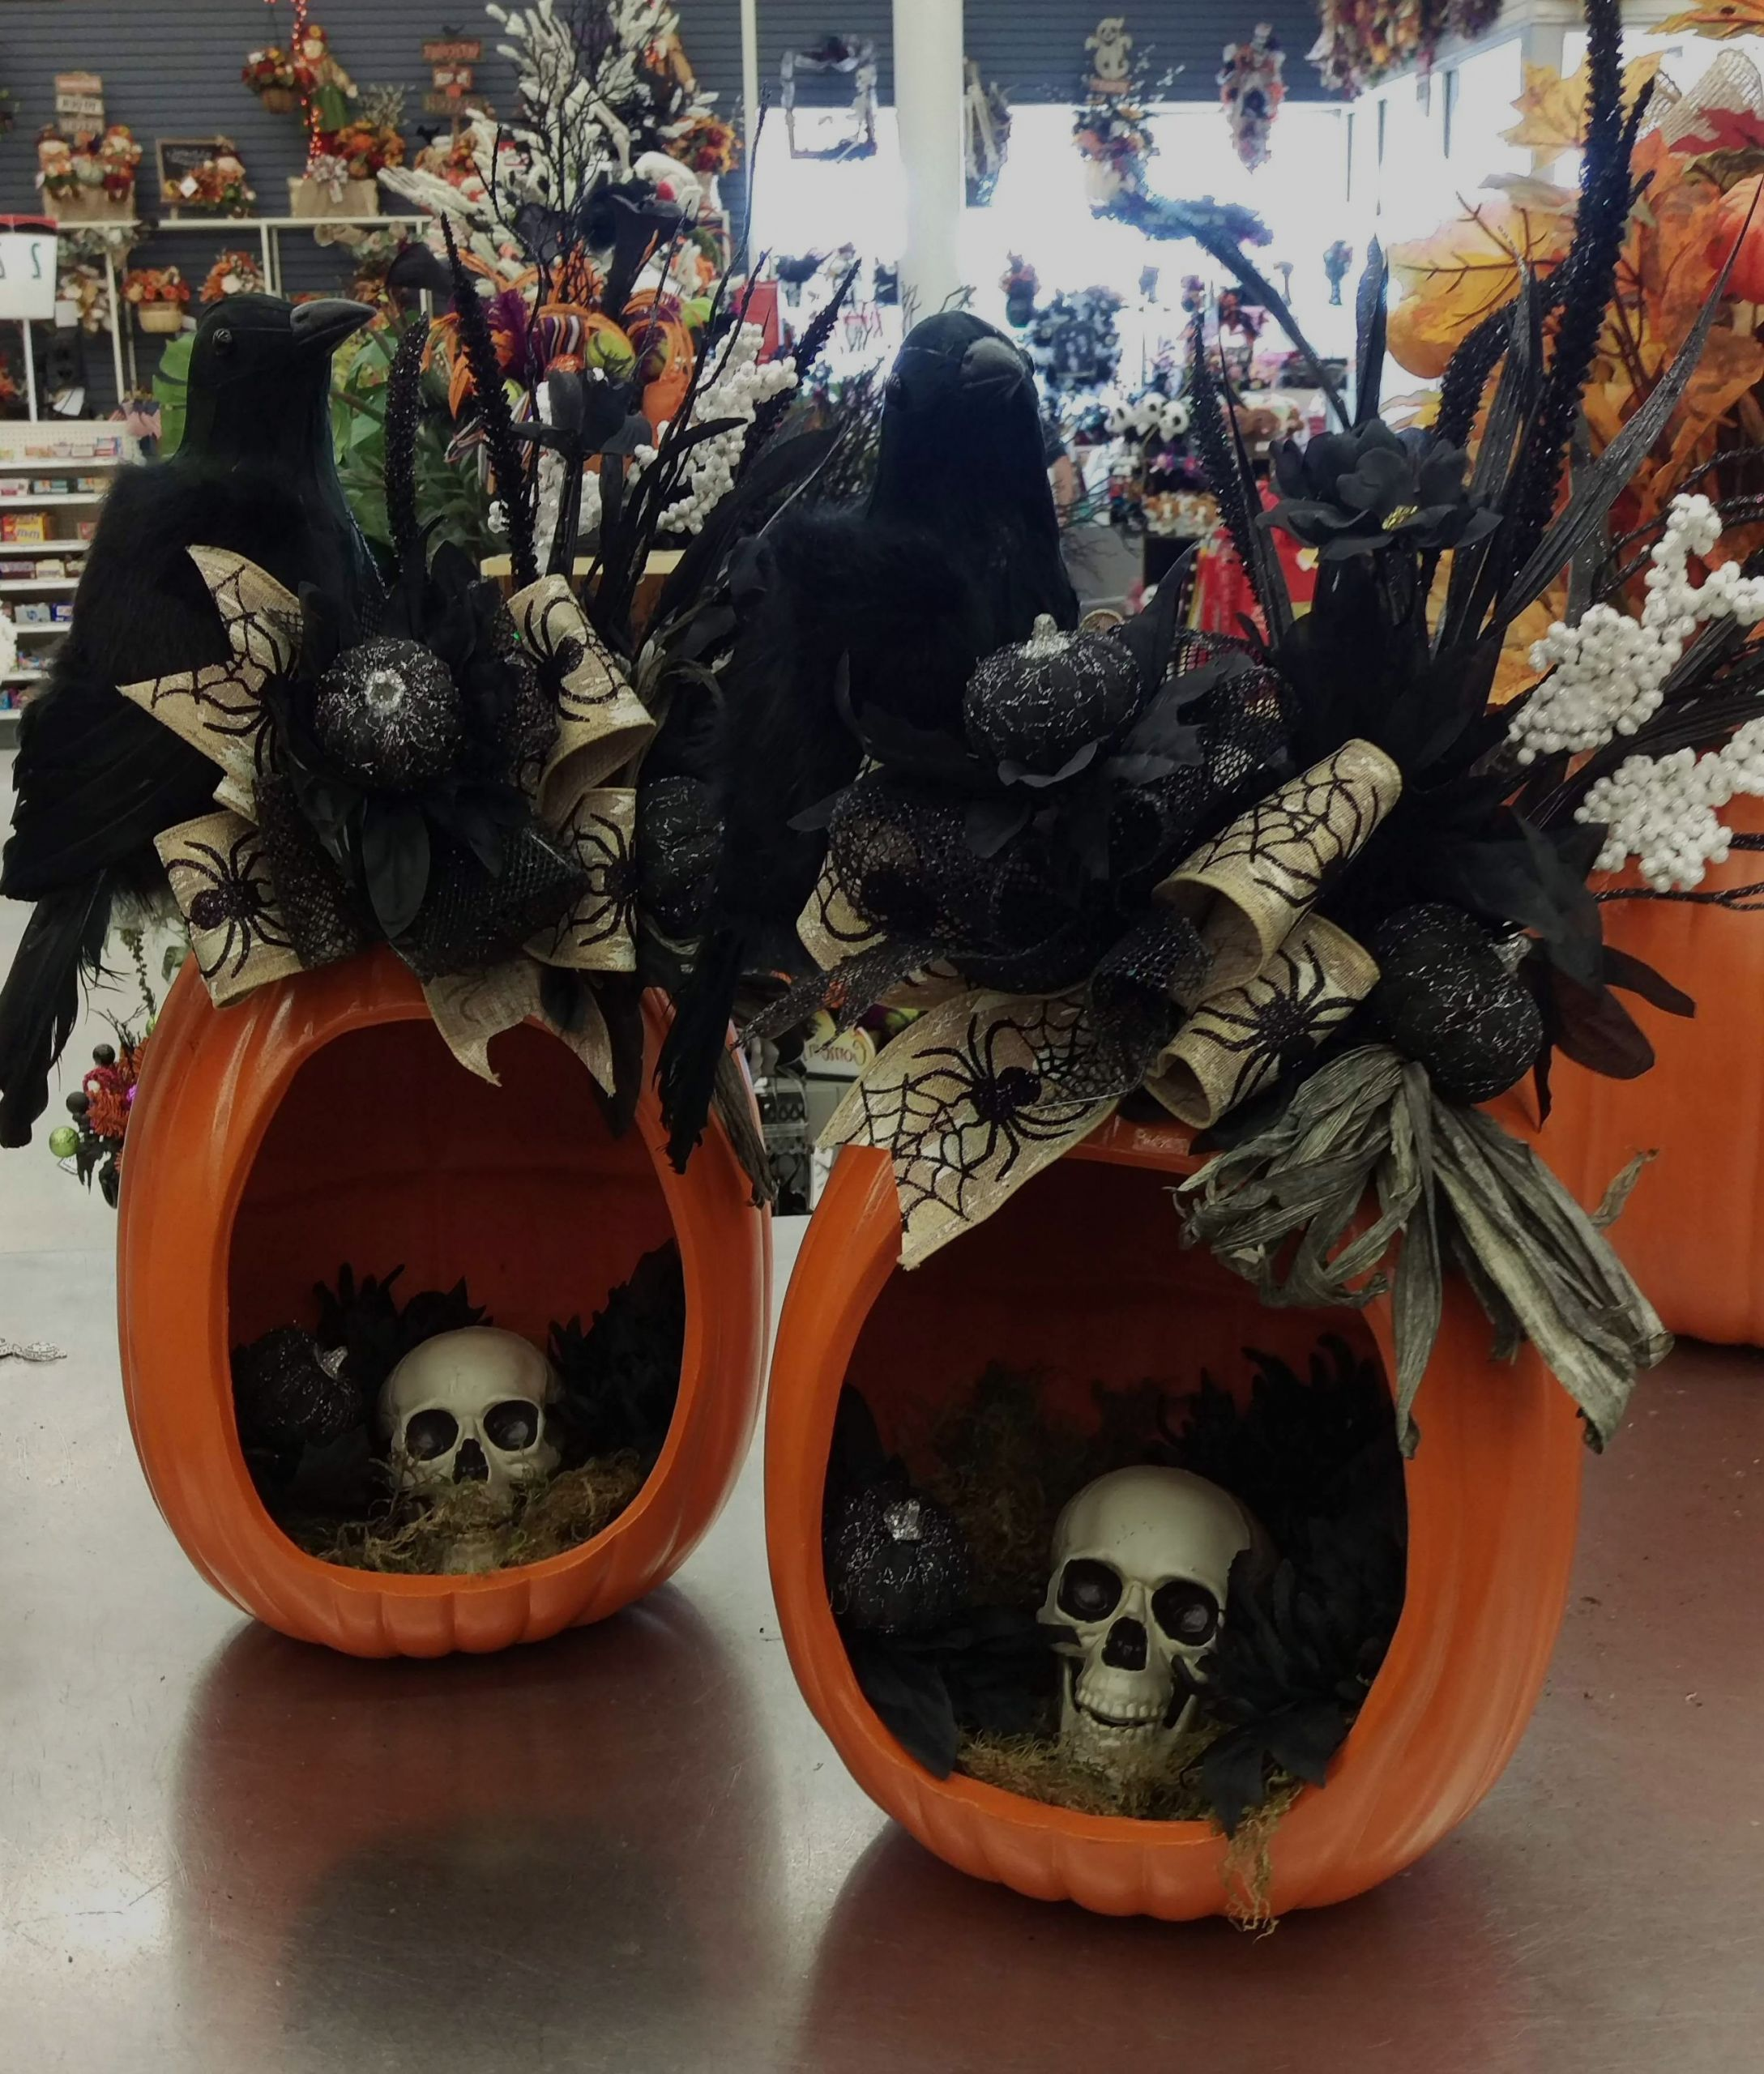 halloween vase filler of thanksgiving decorations at michaels fresh home design ideas with thanksgiving decorations at michaels crows on pumpkins by randi at michaels 1600